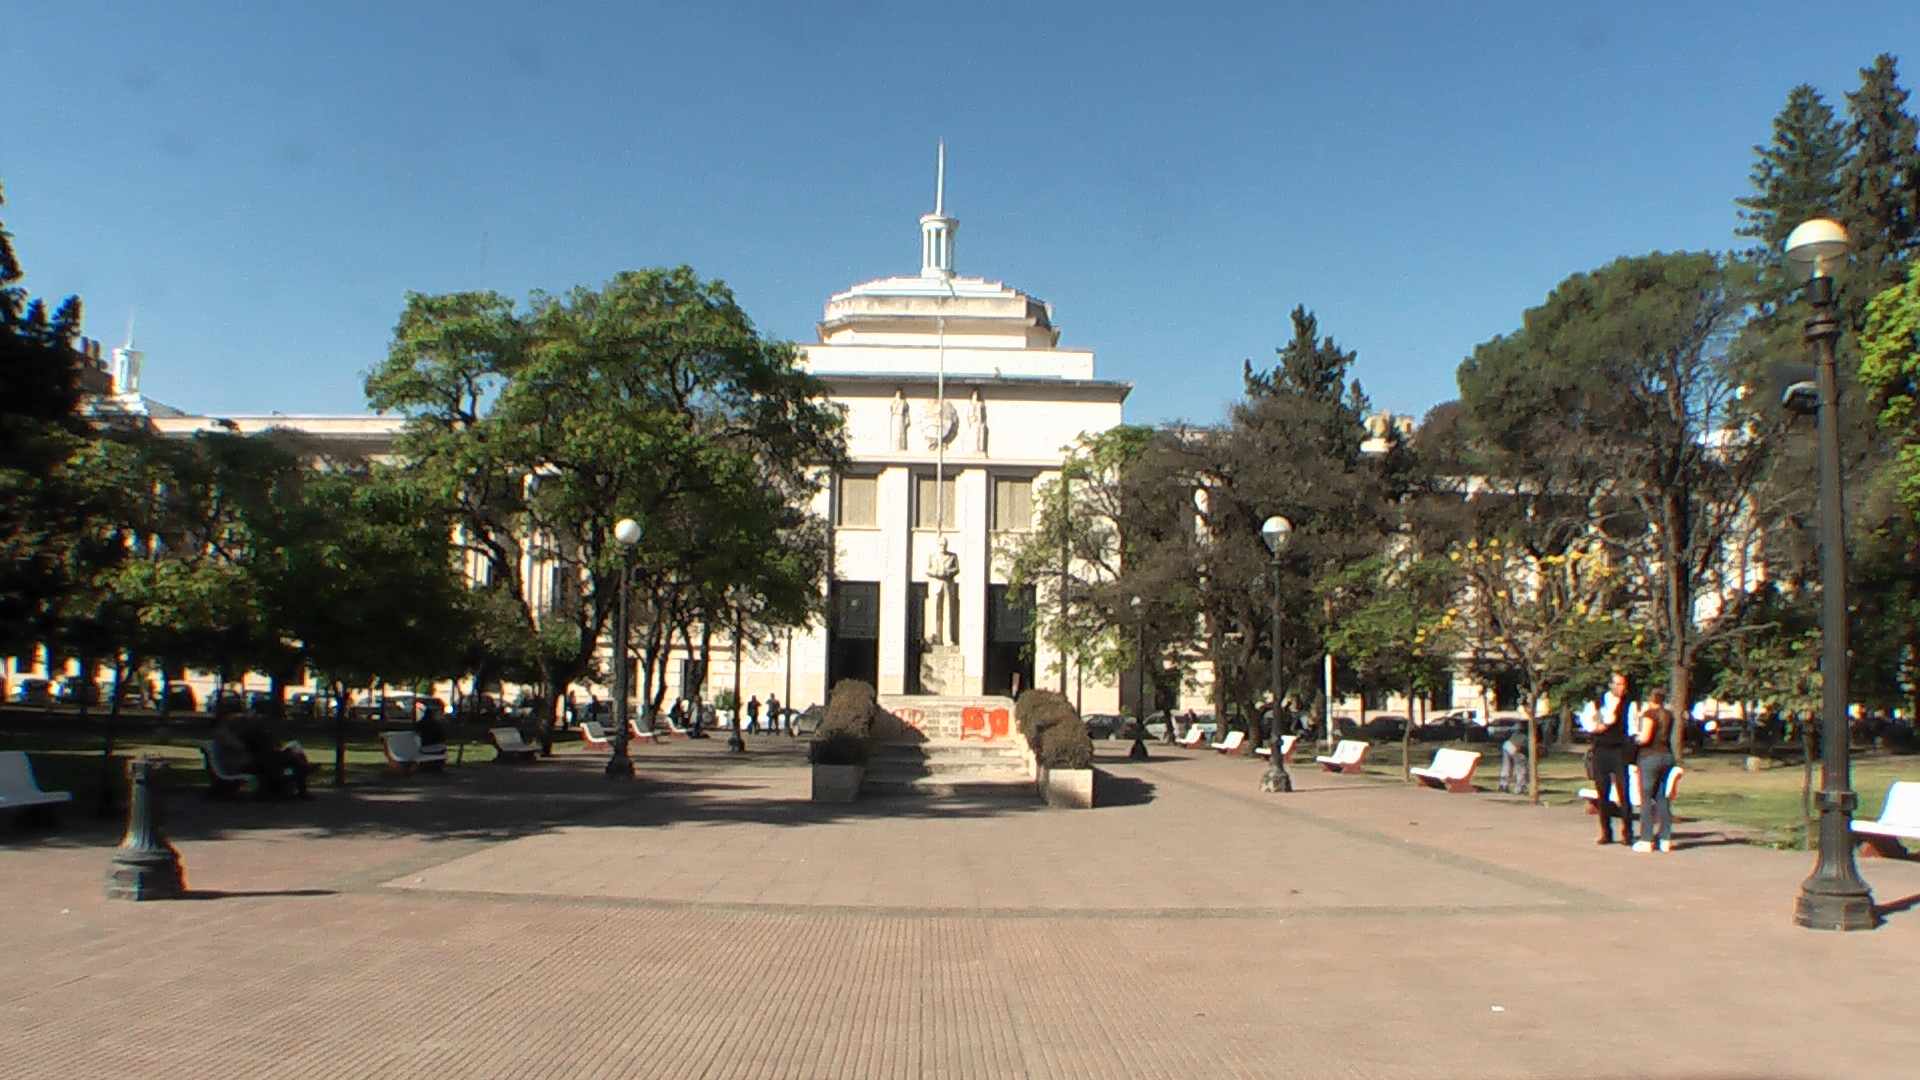 san miguel de tucuman dating site San miguel de tucumán tours and behold the beautiful scenery of tafi del valle on an enriching full-day tour from san miguel de tucuman dating from 1929.